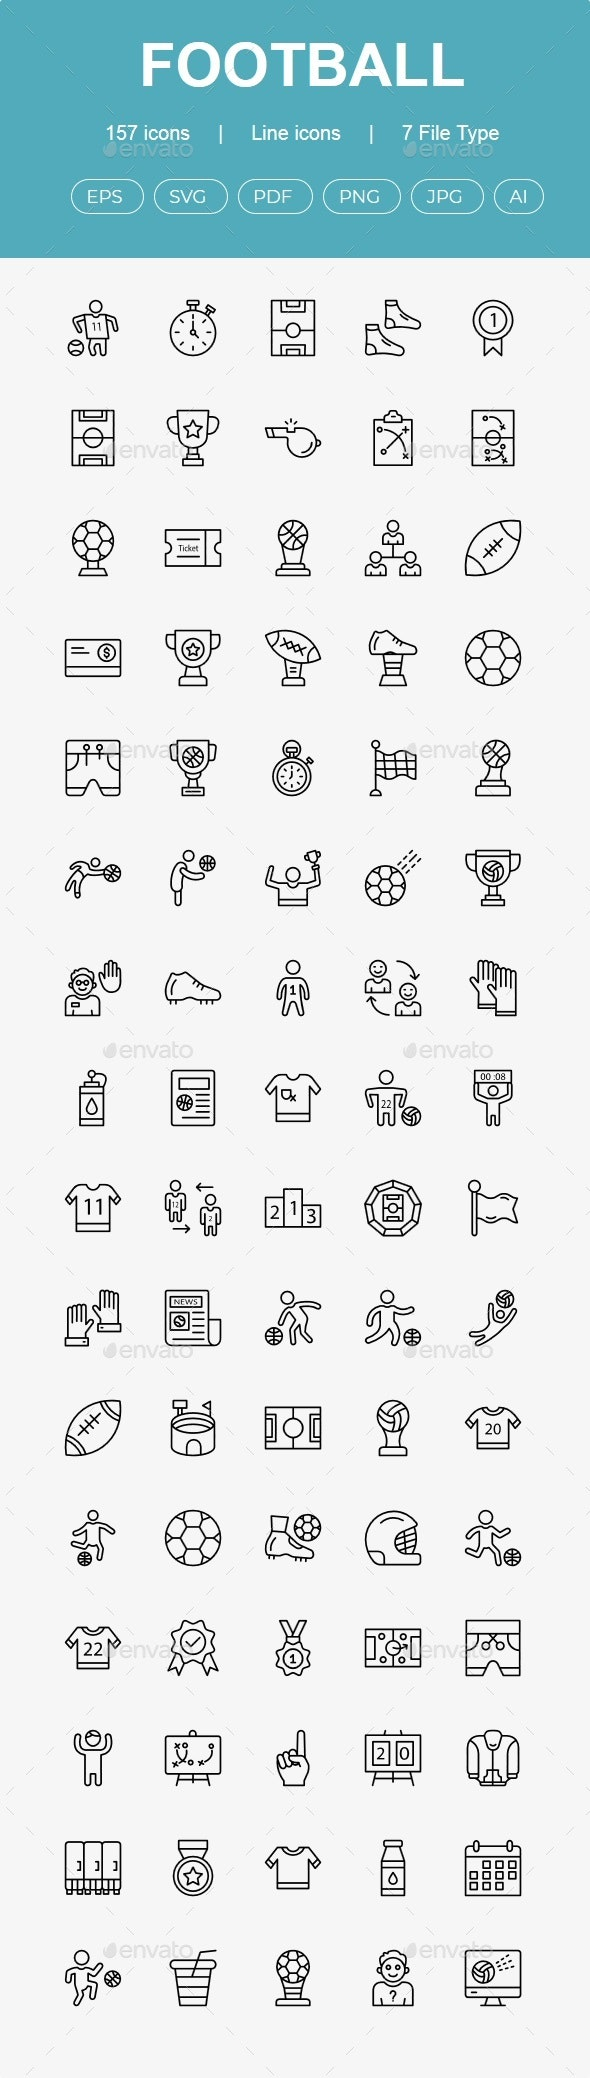 Football line icons